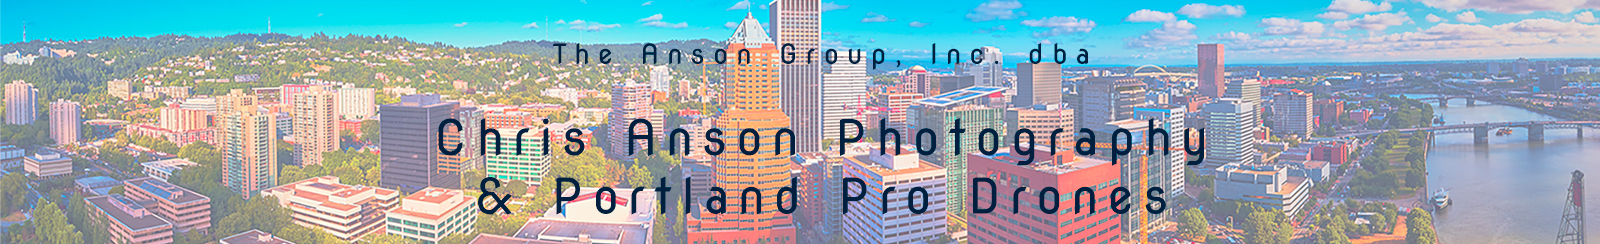 Chris Anson Photography & Portland Pro Drones